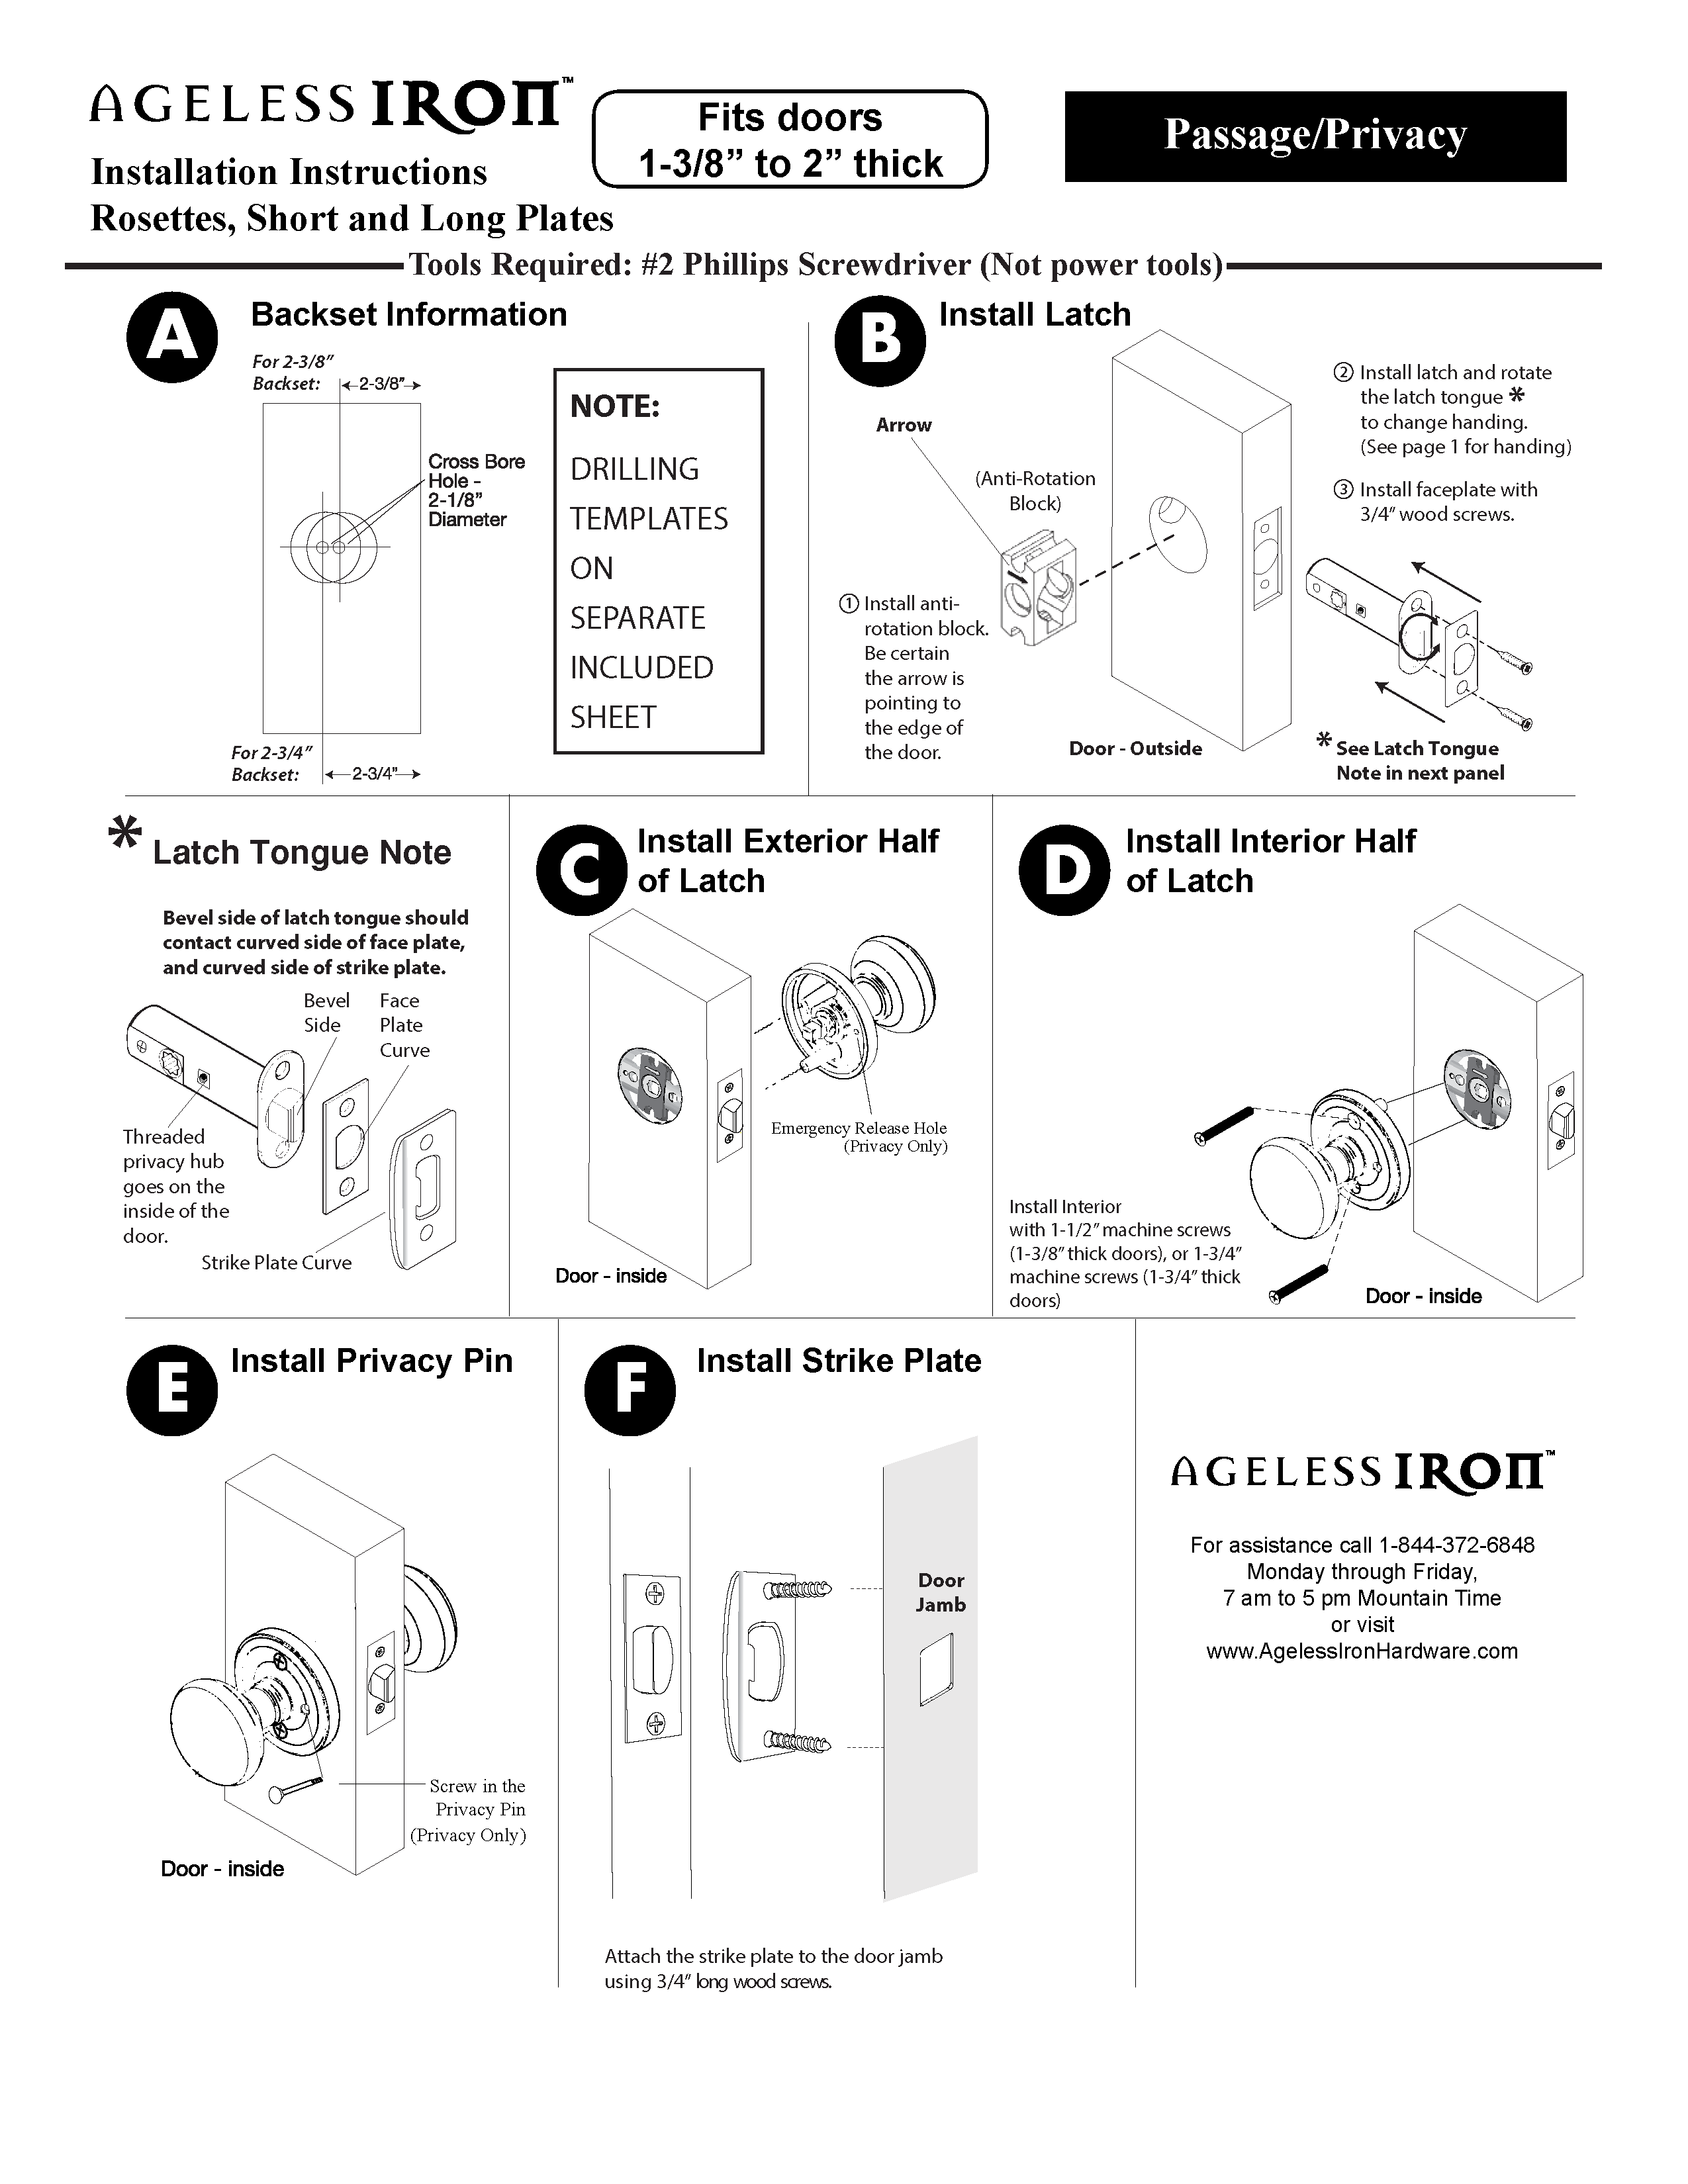 Passage and Privacy Instructions